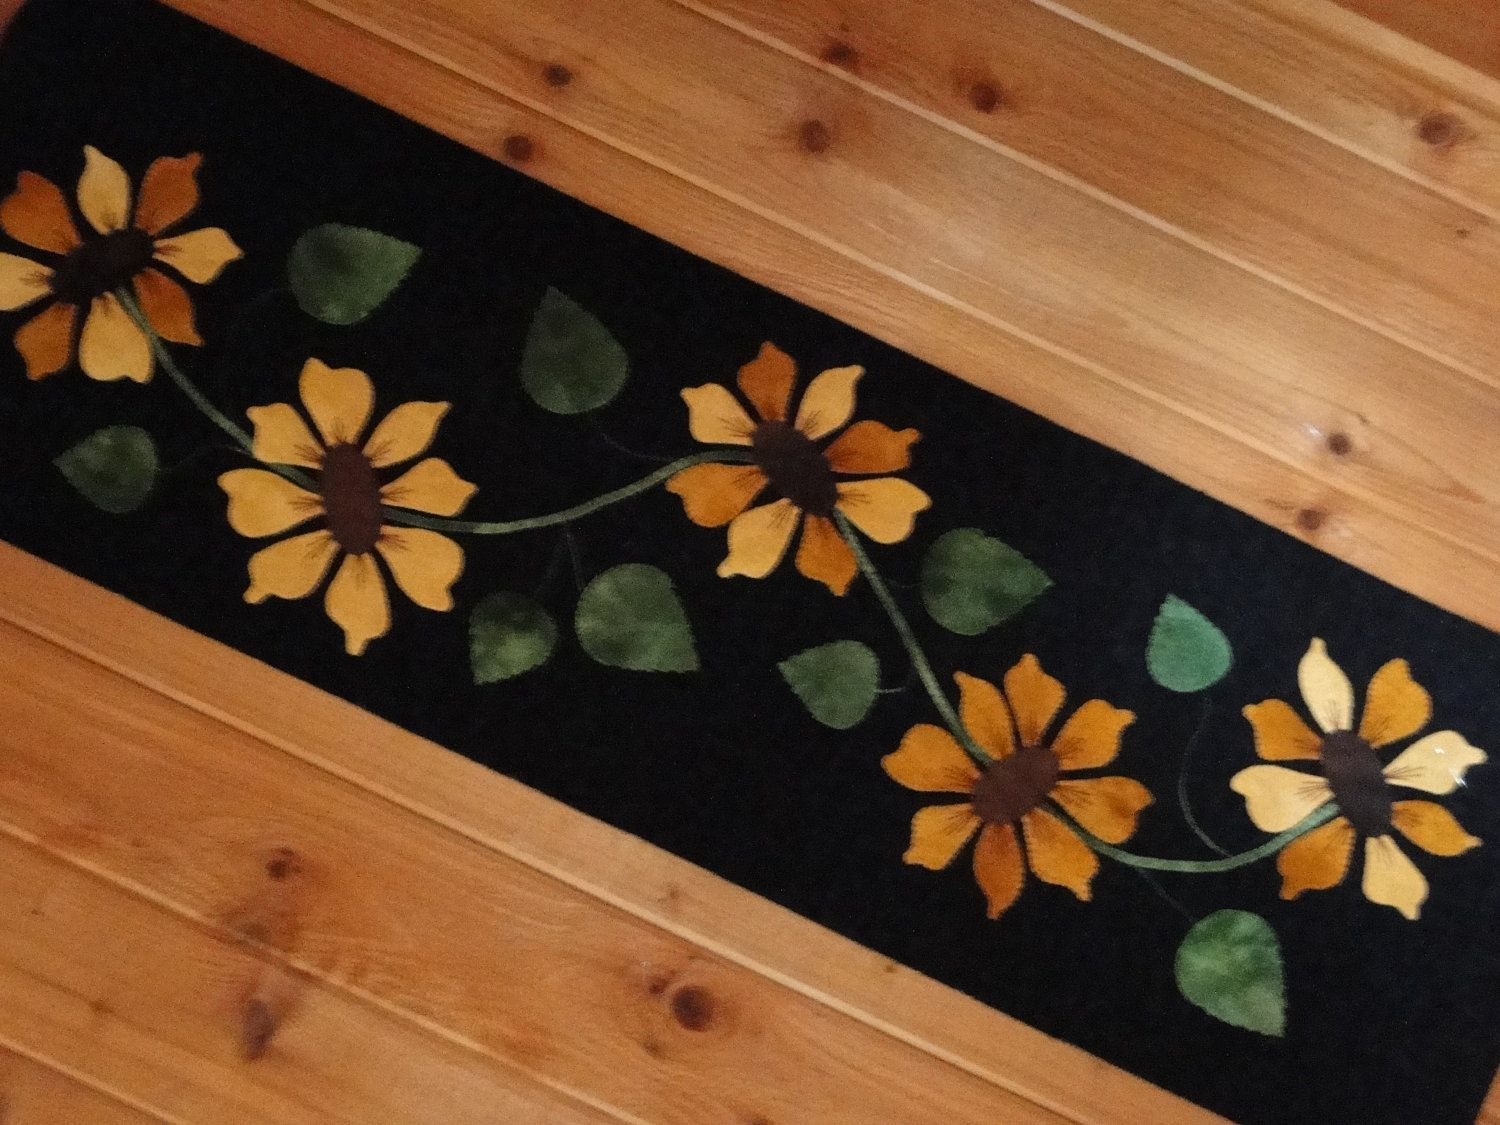 Applique Table Runners   Sunflower Wool Applique Table Runner Pattern By  Yogybooboo On Etsy